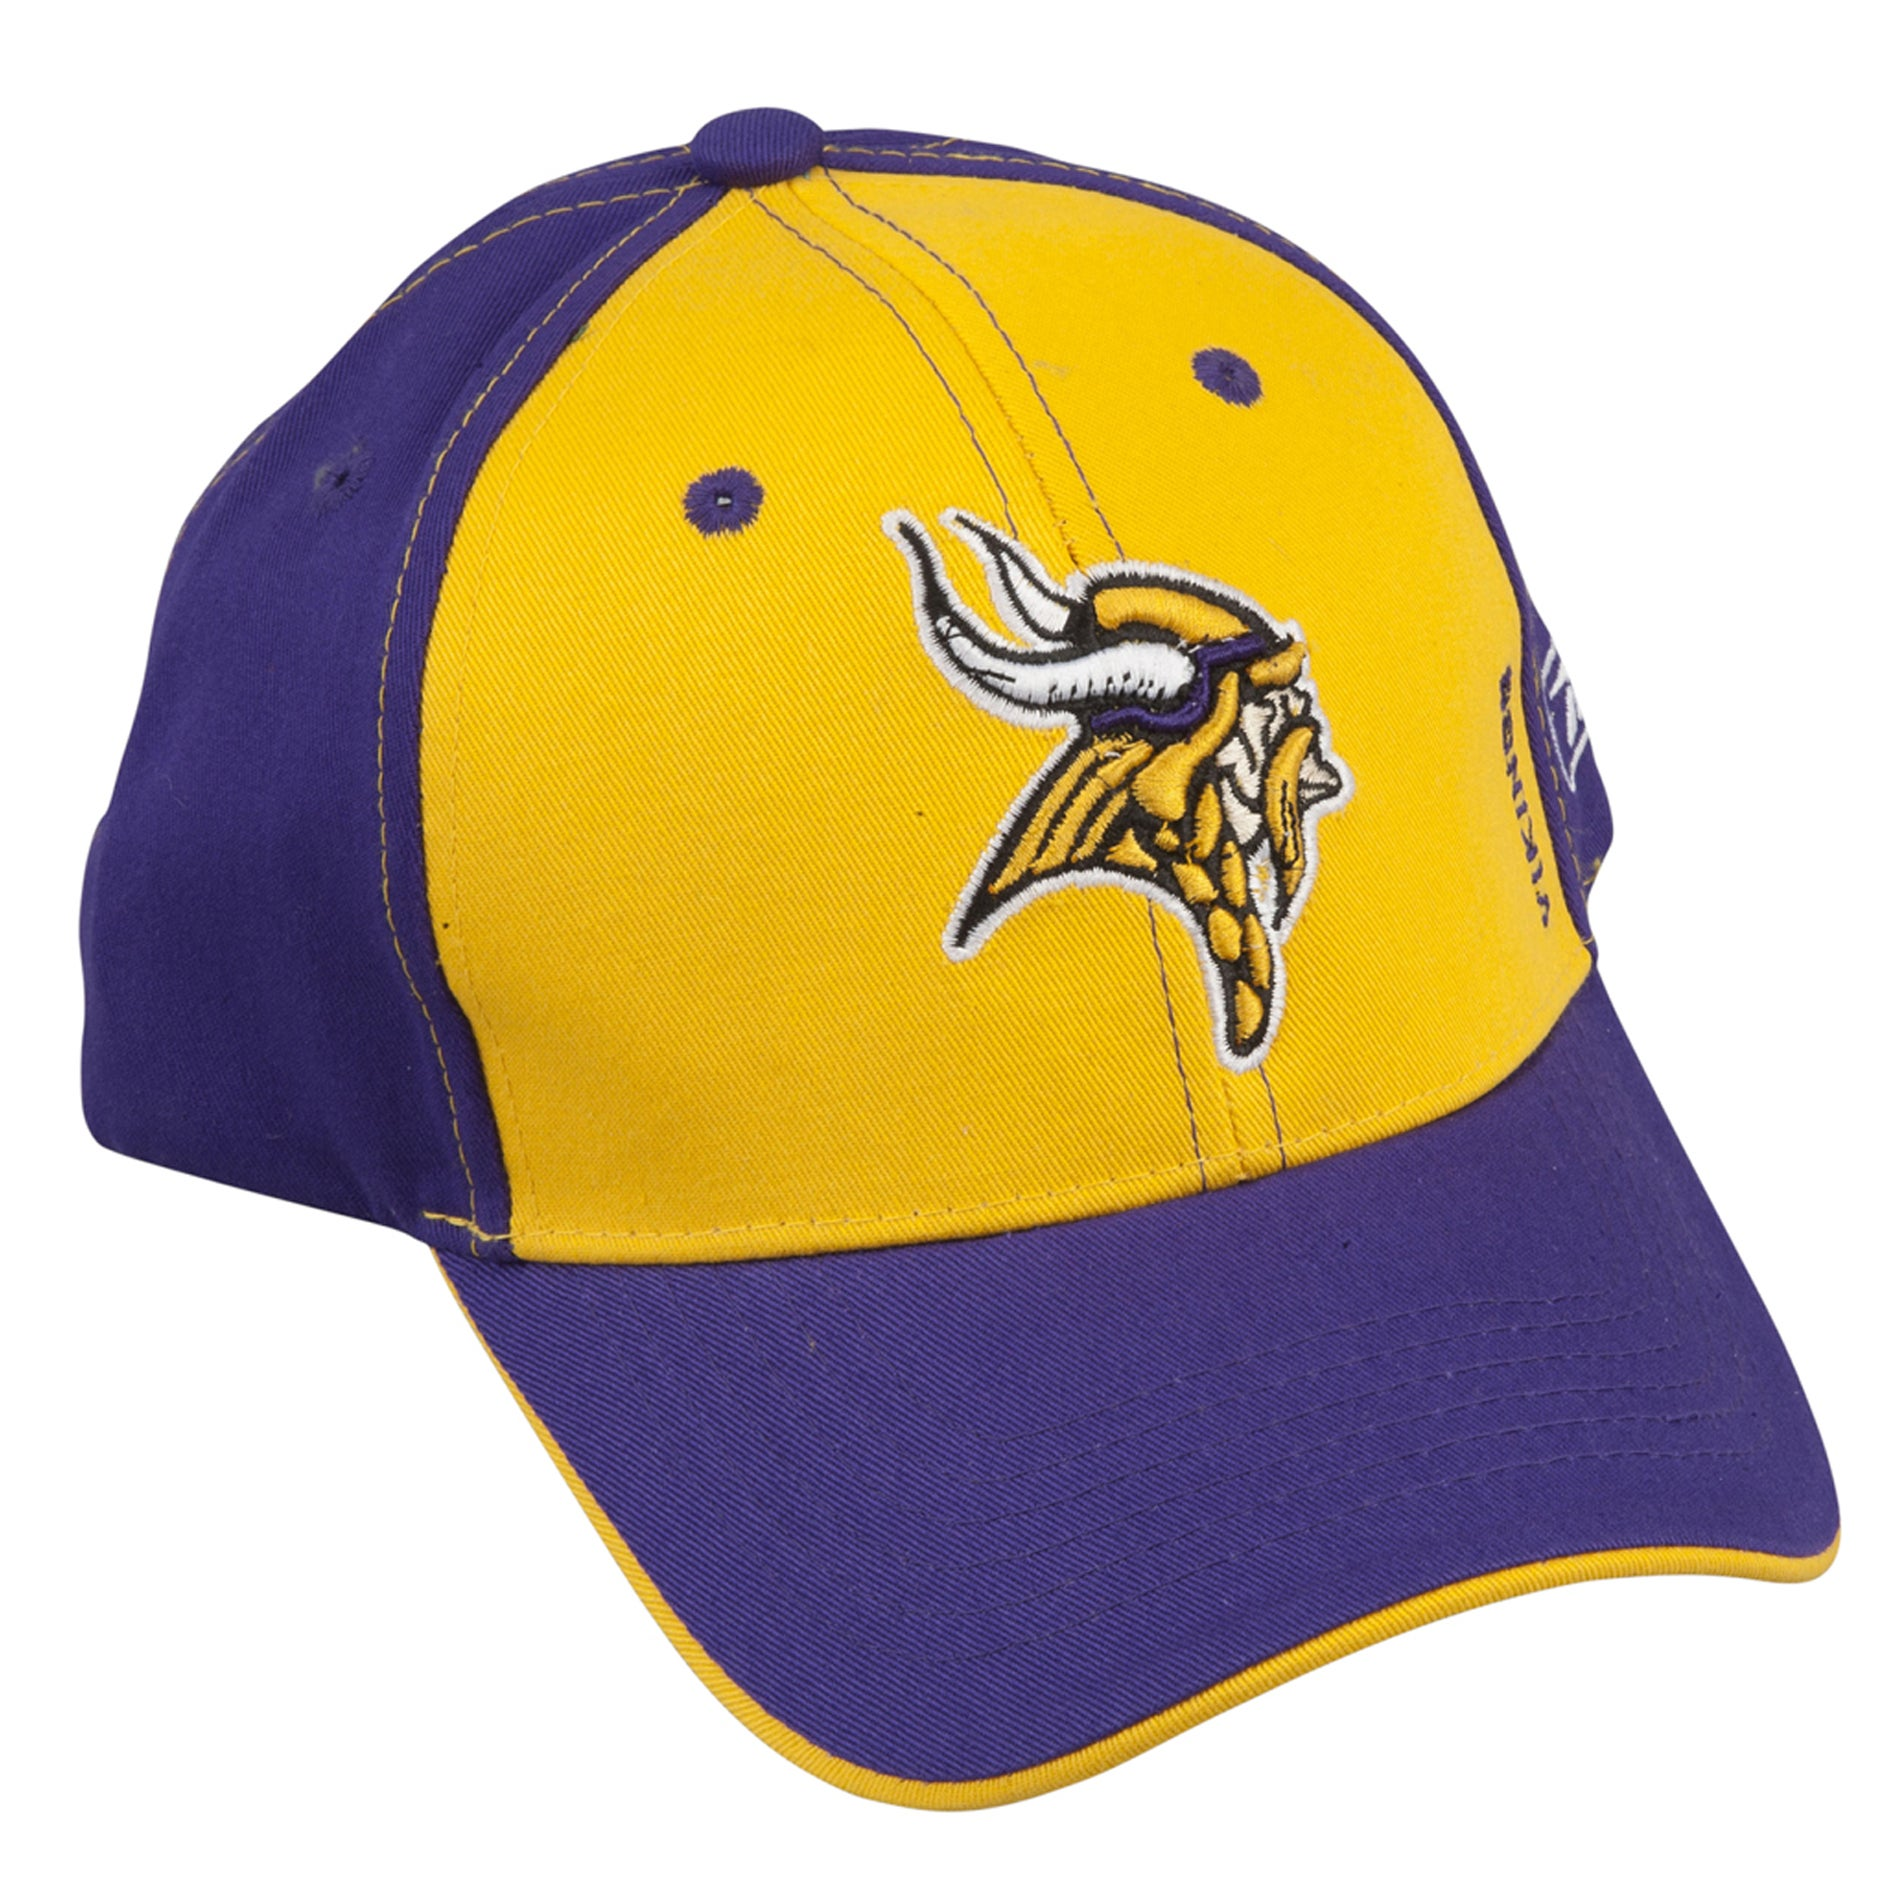 Forever collectibles minnesota vikings nfl polyester thematic polo